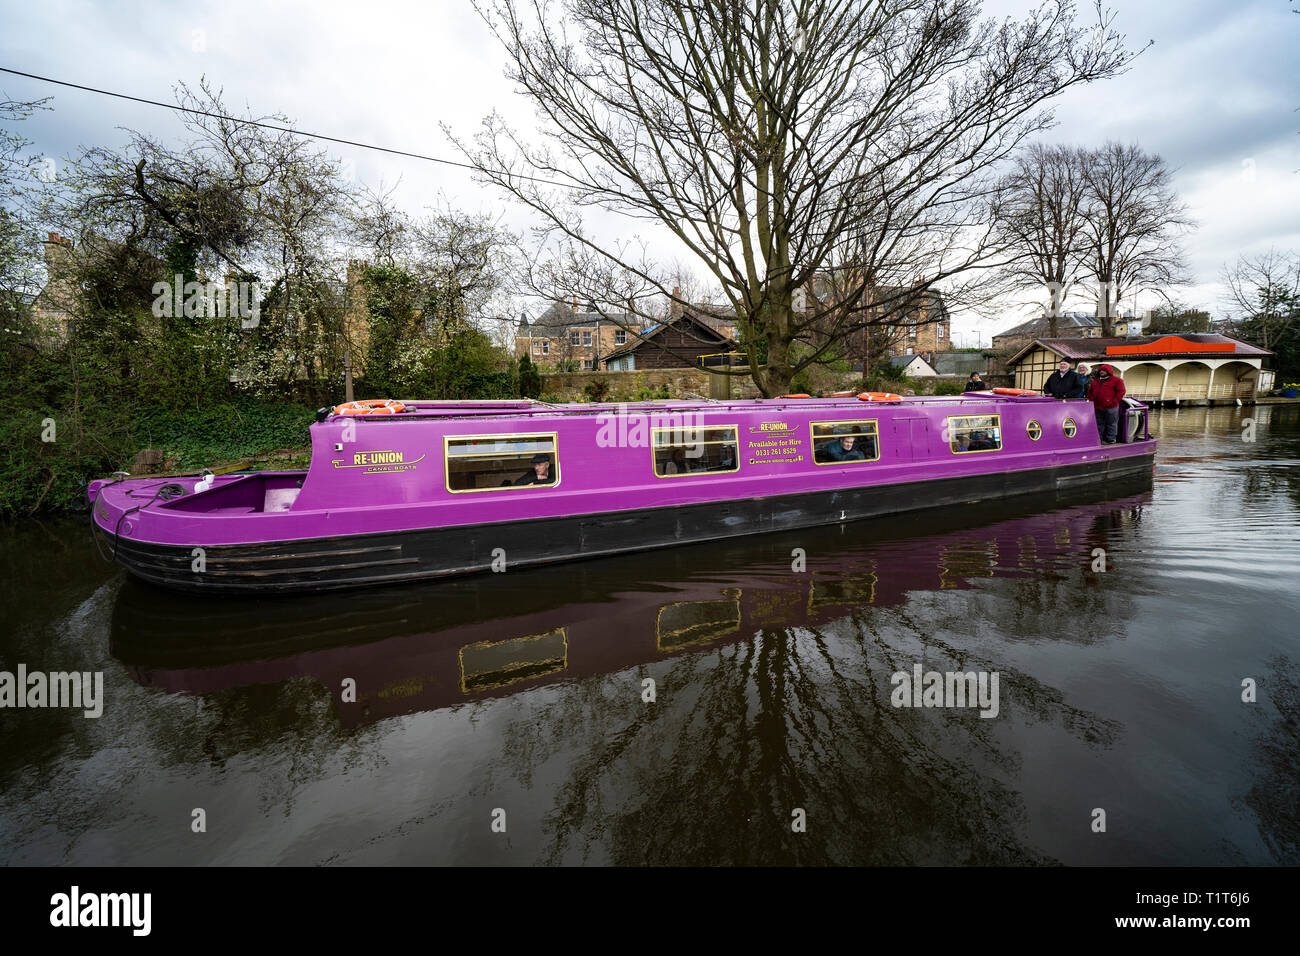 The Union Canal with narrowboat in early spring  in Edinburgh, Scotland, UK - Stock Image